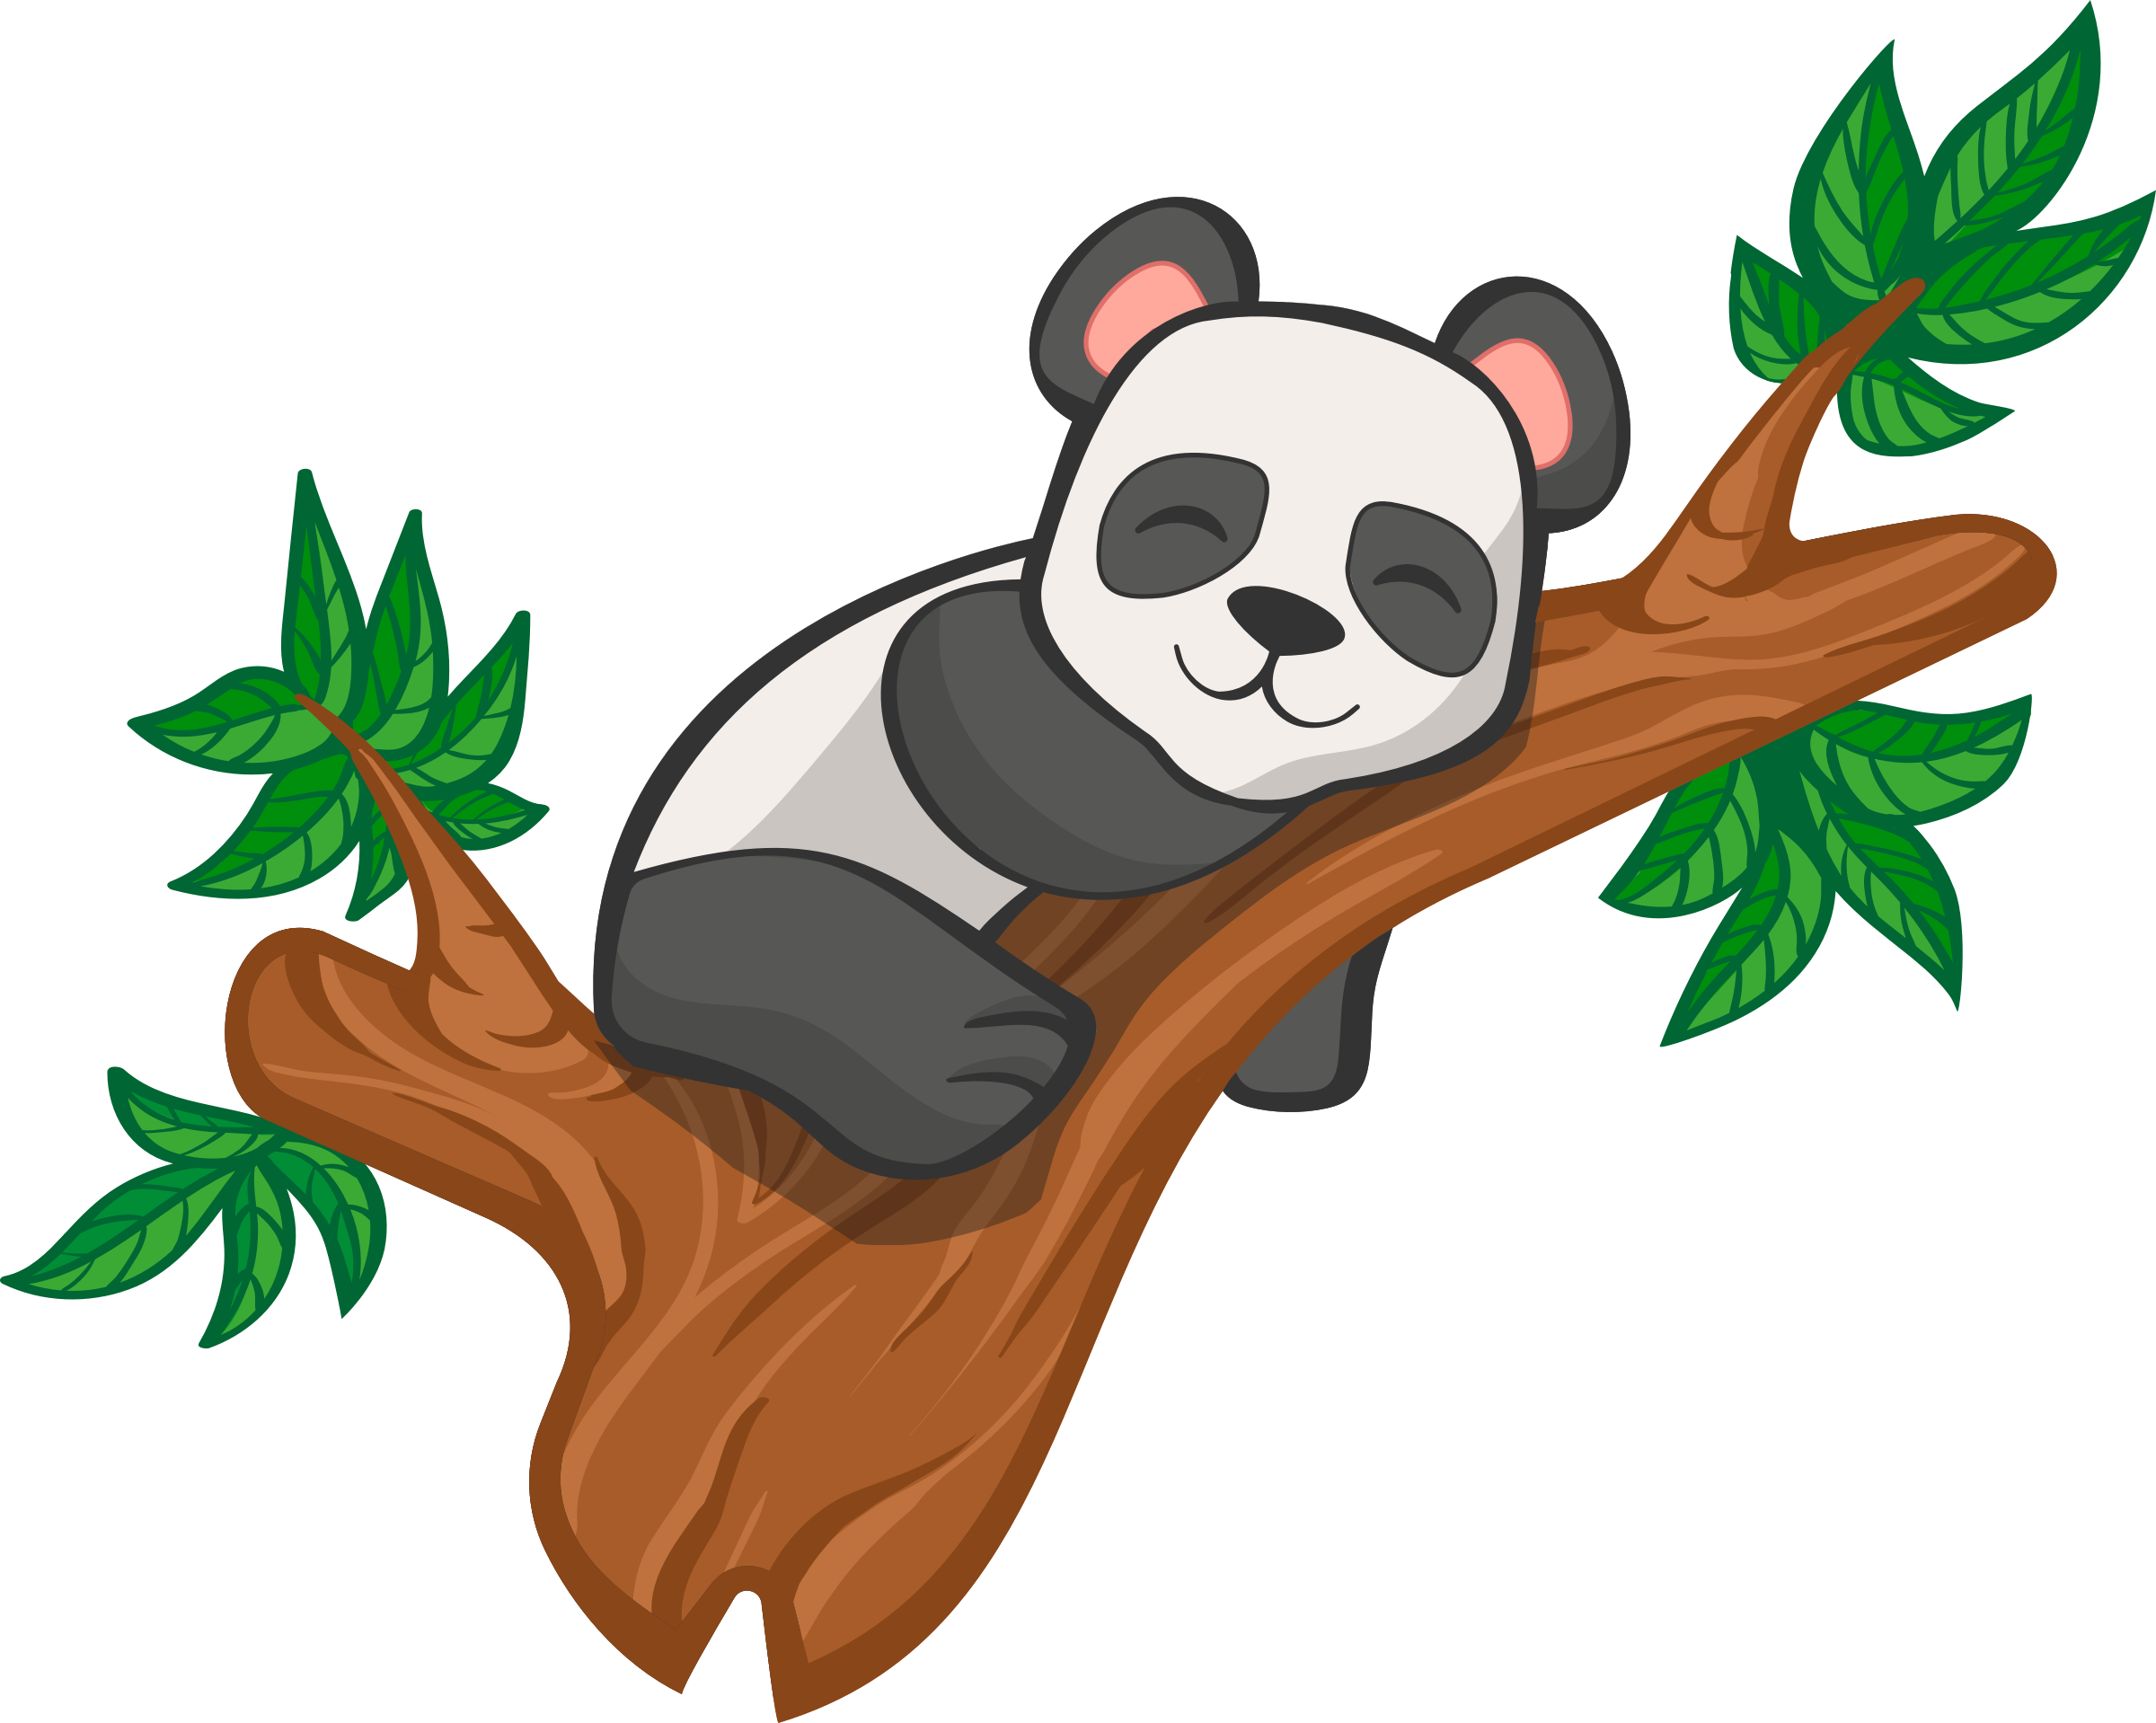 Clipart panda tree, Clipart panda tree Transparent FREE for.